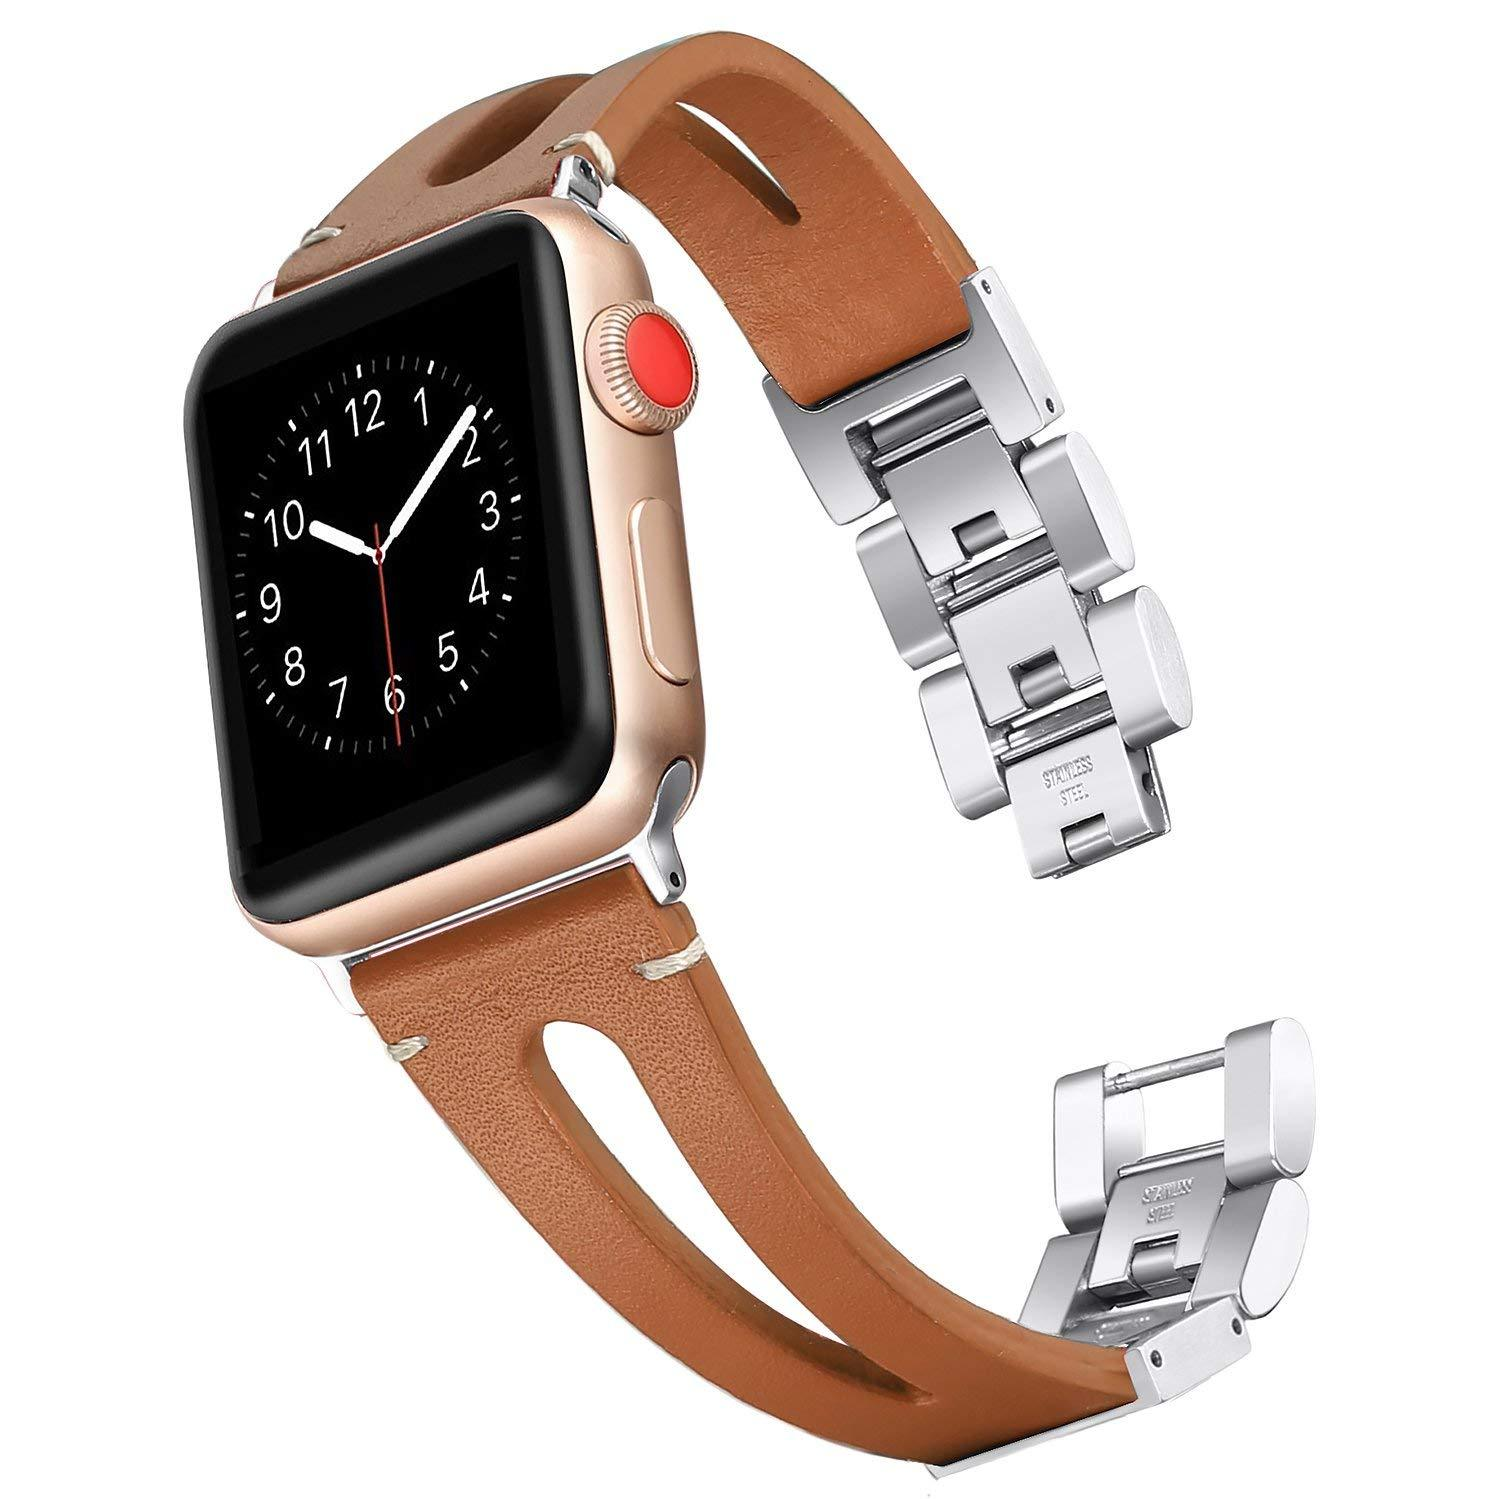 Genuine Calf Leather Apple Watch Bands 38mm/42mm/40m/44mm - iWatch Band Series 4 3 2 1 - Brown / 38mm-40mm - Watchbands